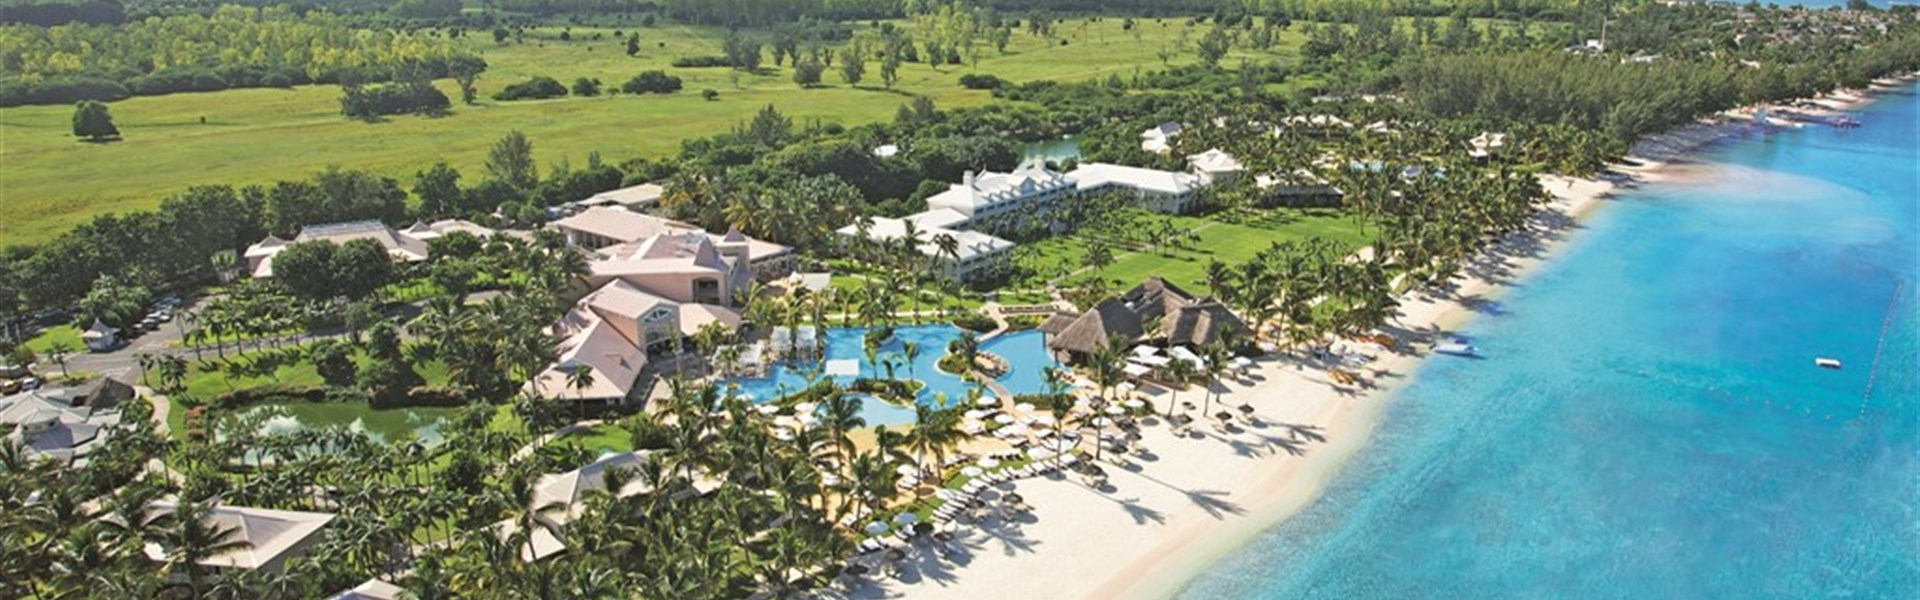 Marco Polo - Sugar Beach - A Sun Resort Mauritius -